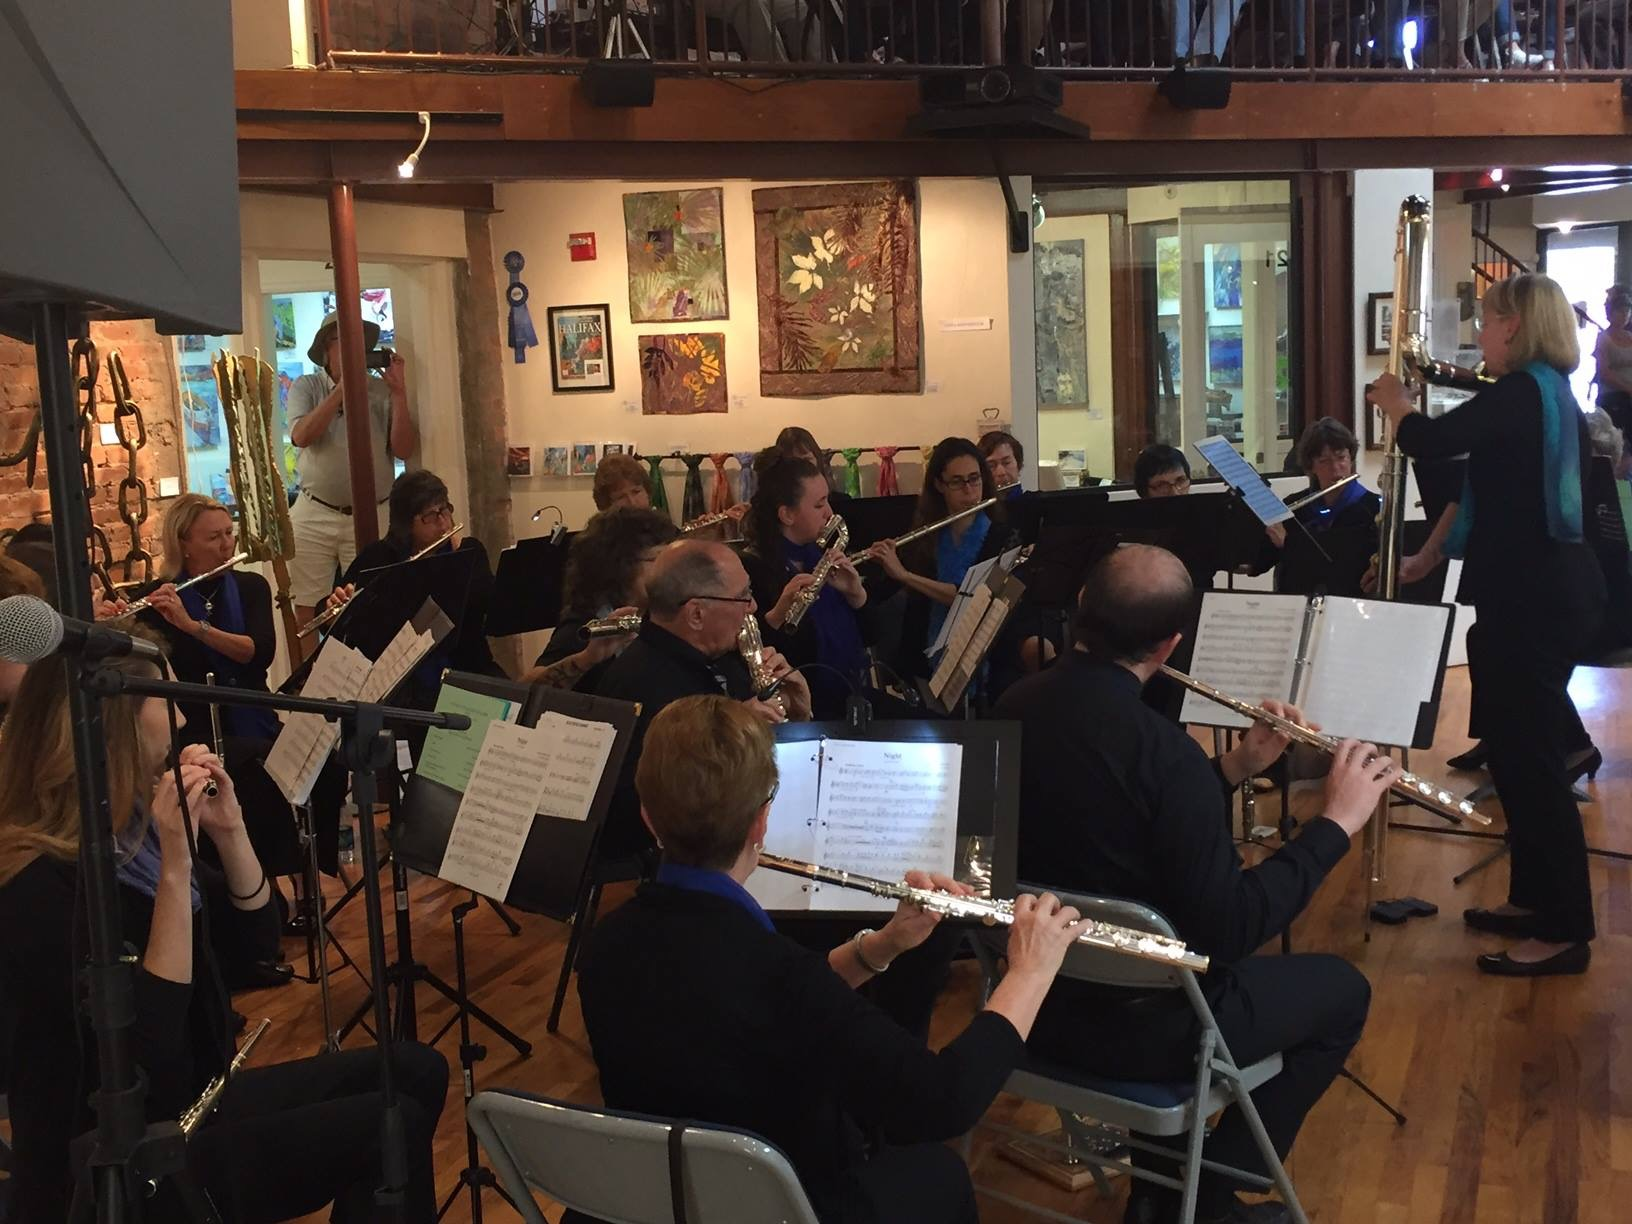 Daytona State College and Community Flute Choir in concert at The Hub Art Gallery in New Smyrna Beach